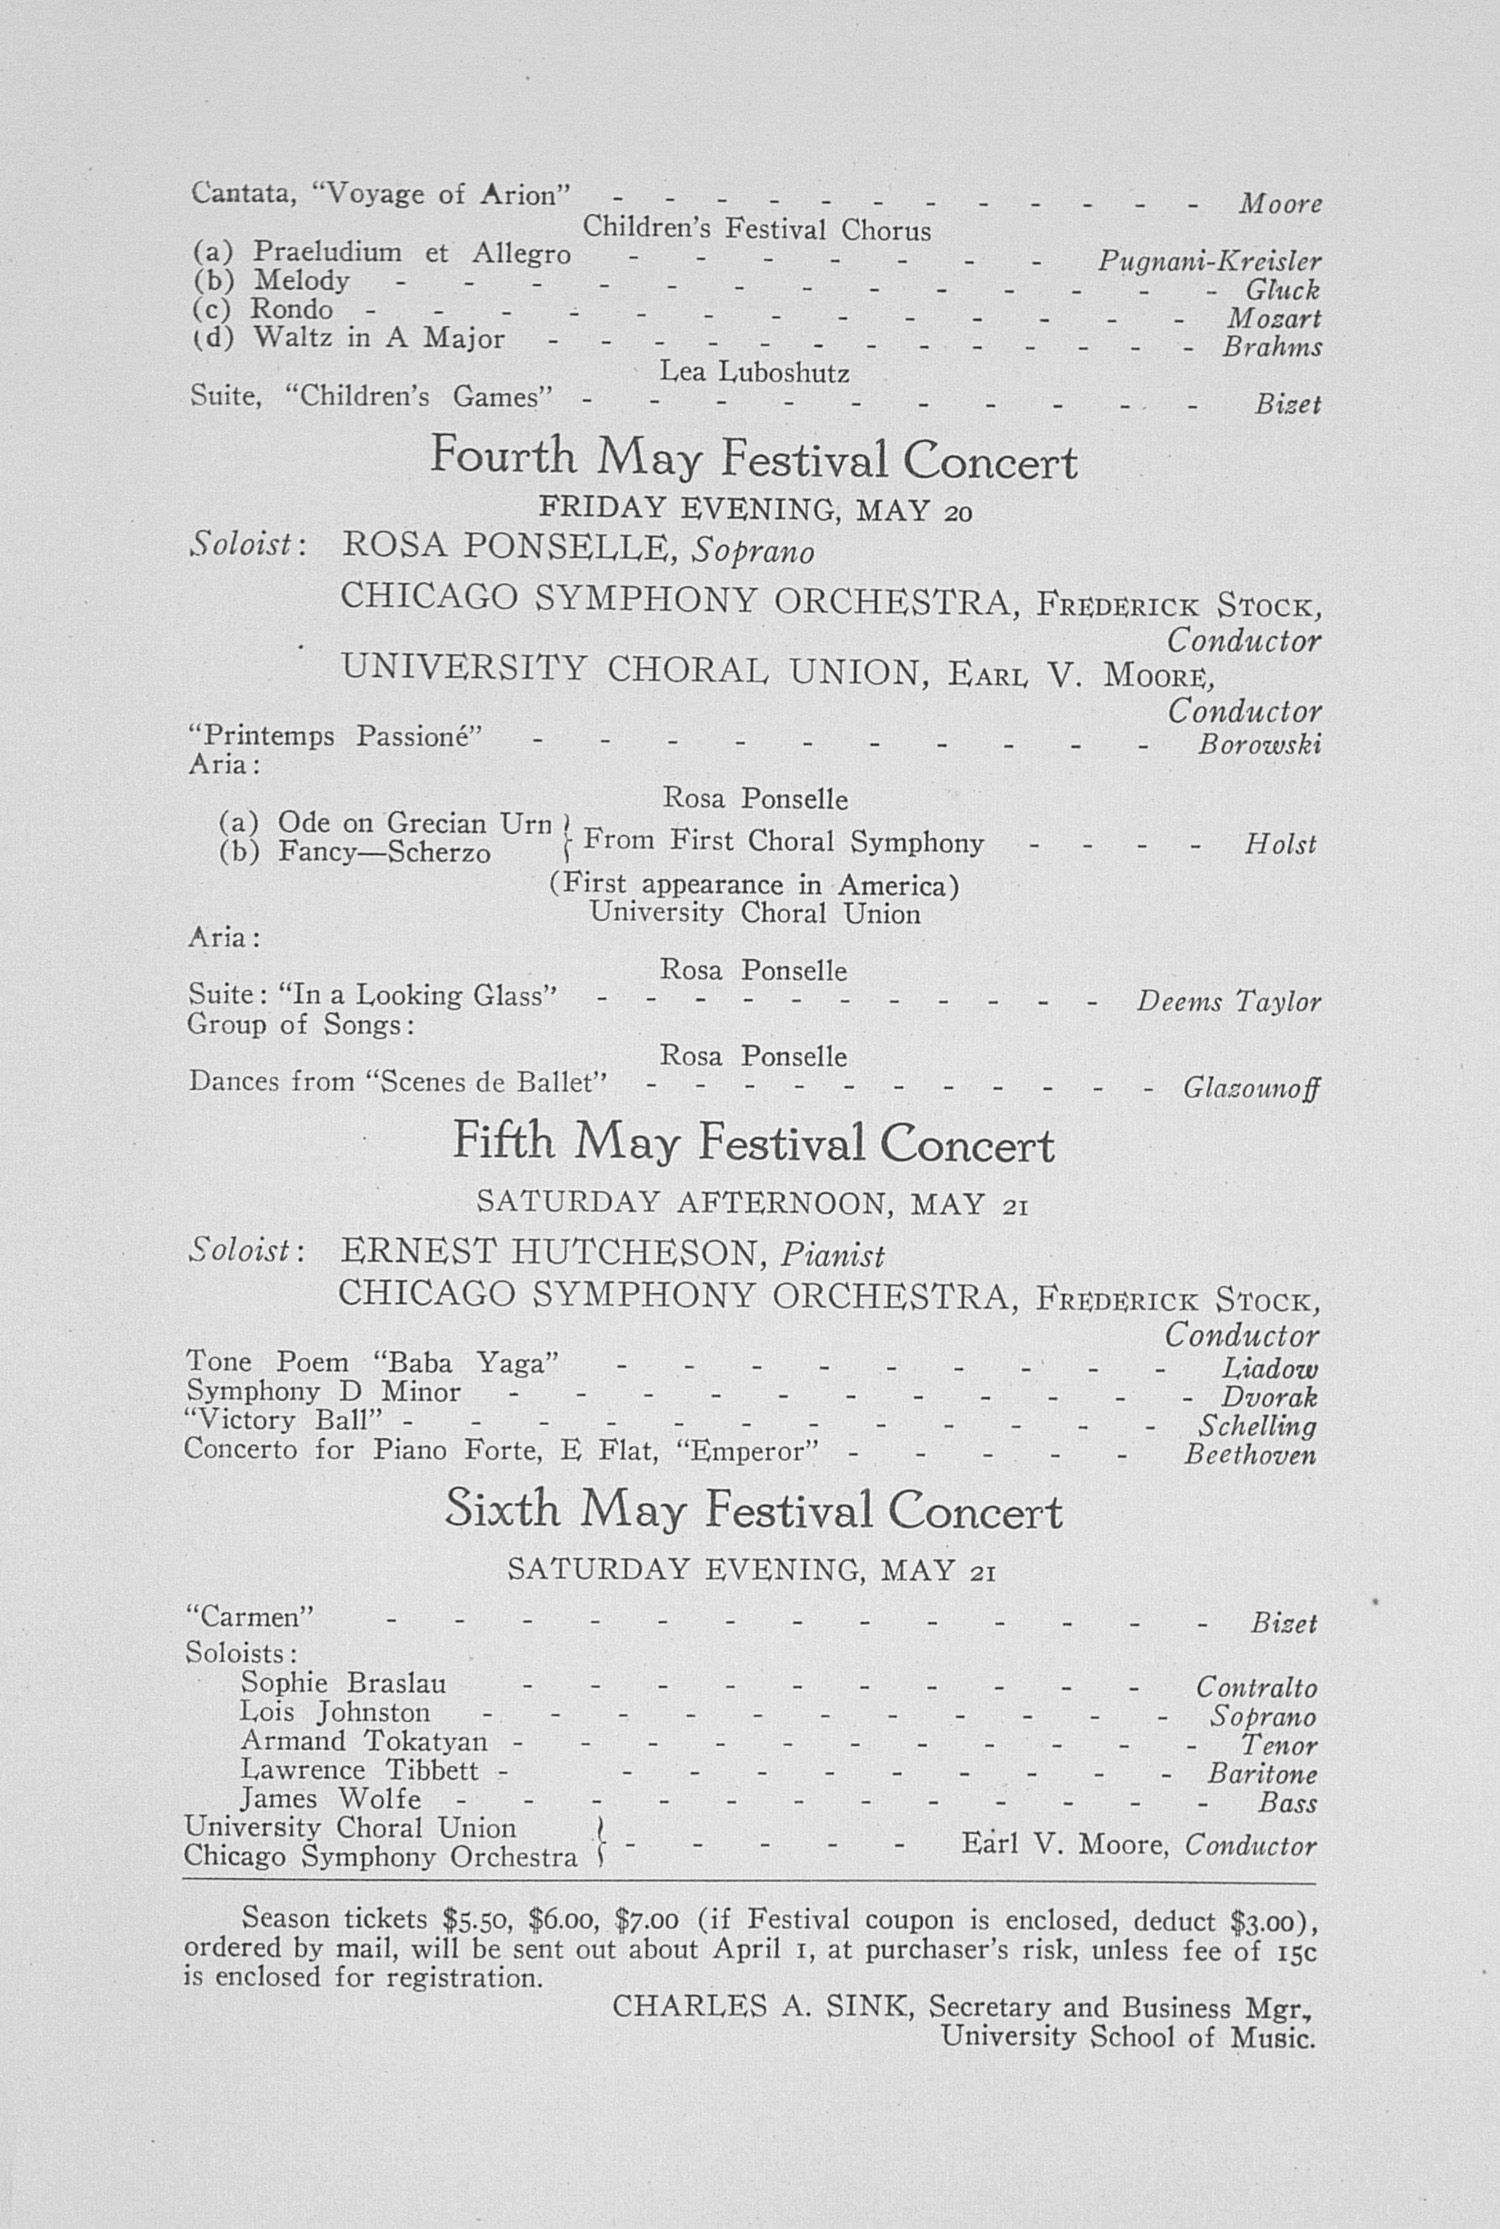 UMS Concert Program, March 2, 1927: Choral Union Series -- Guiomar Novaes image